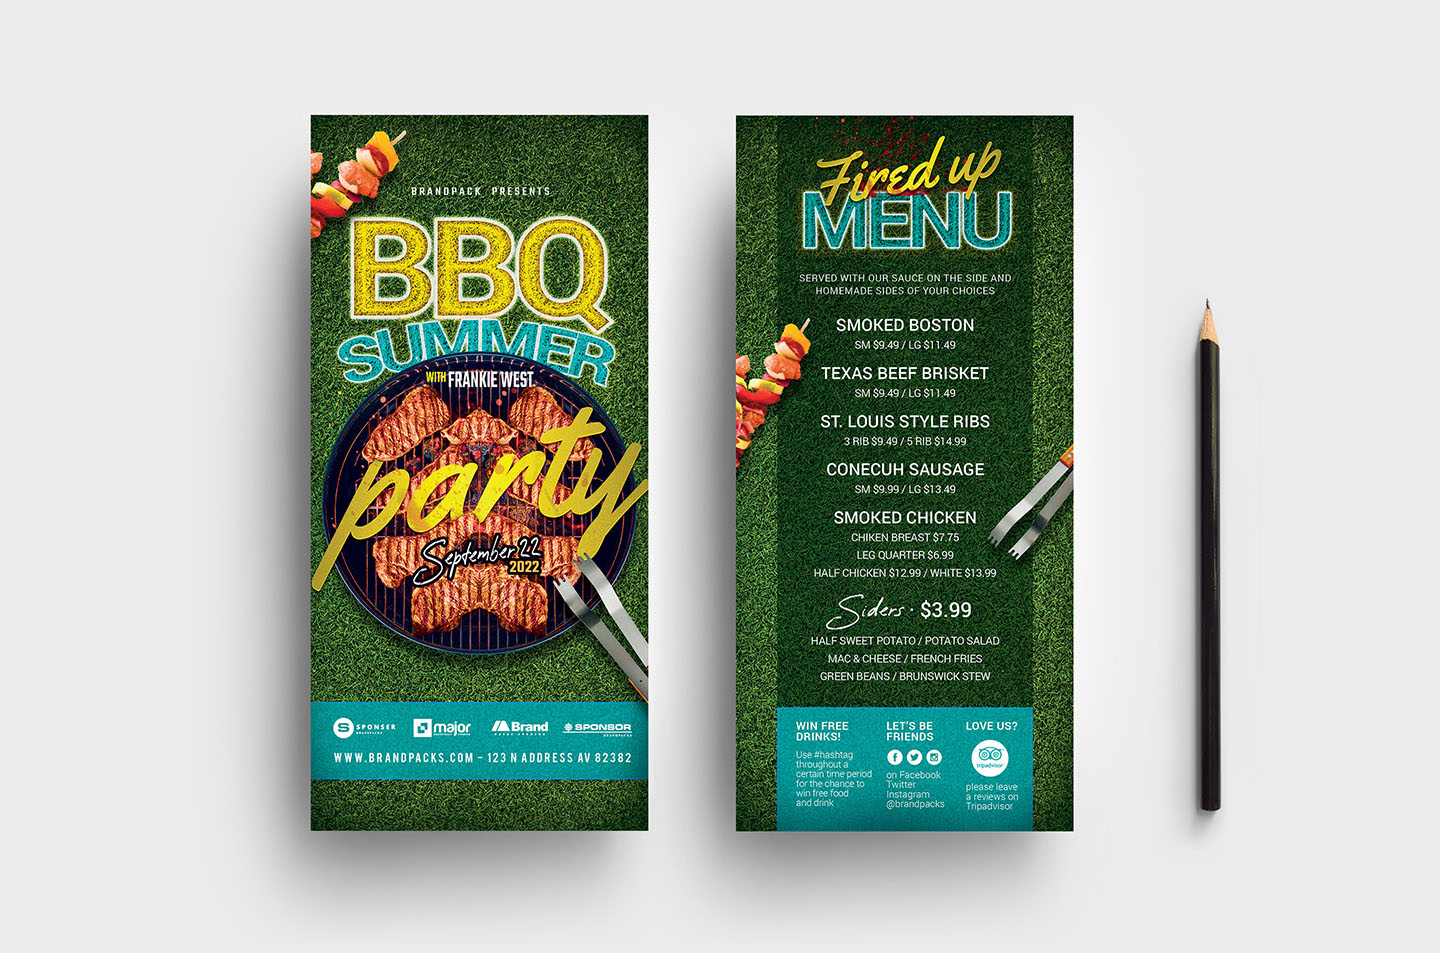 BBQ Cookout Flyer Template example image 5